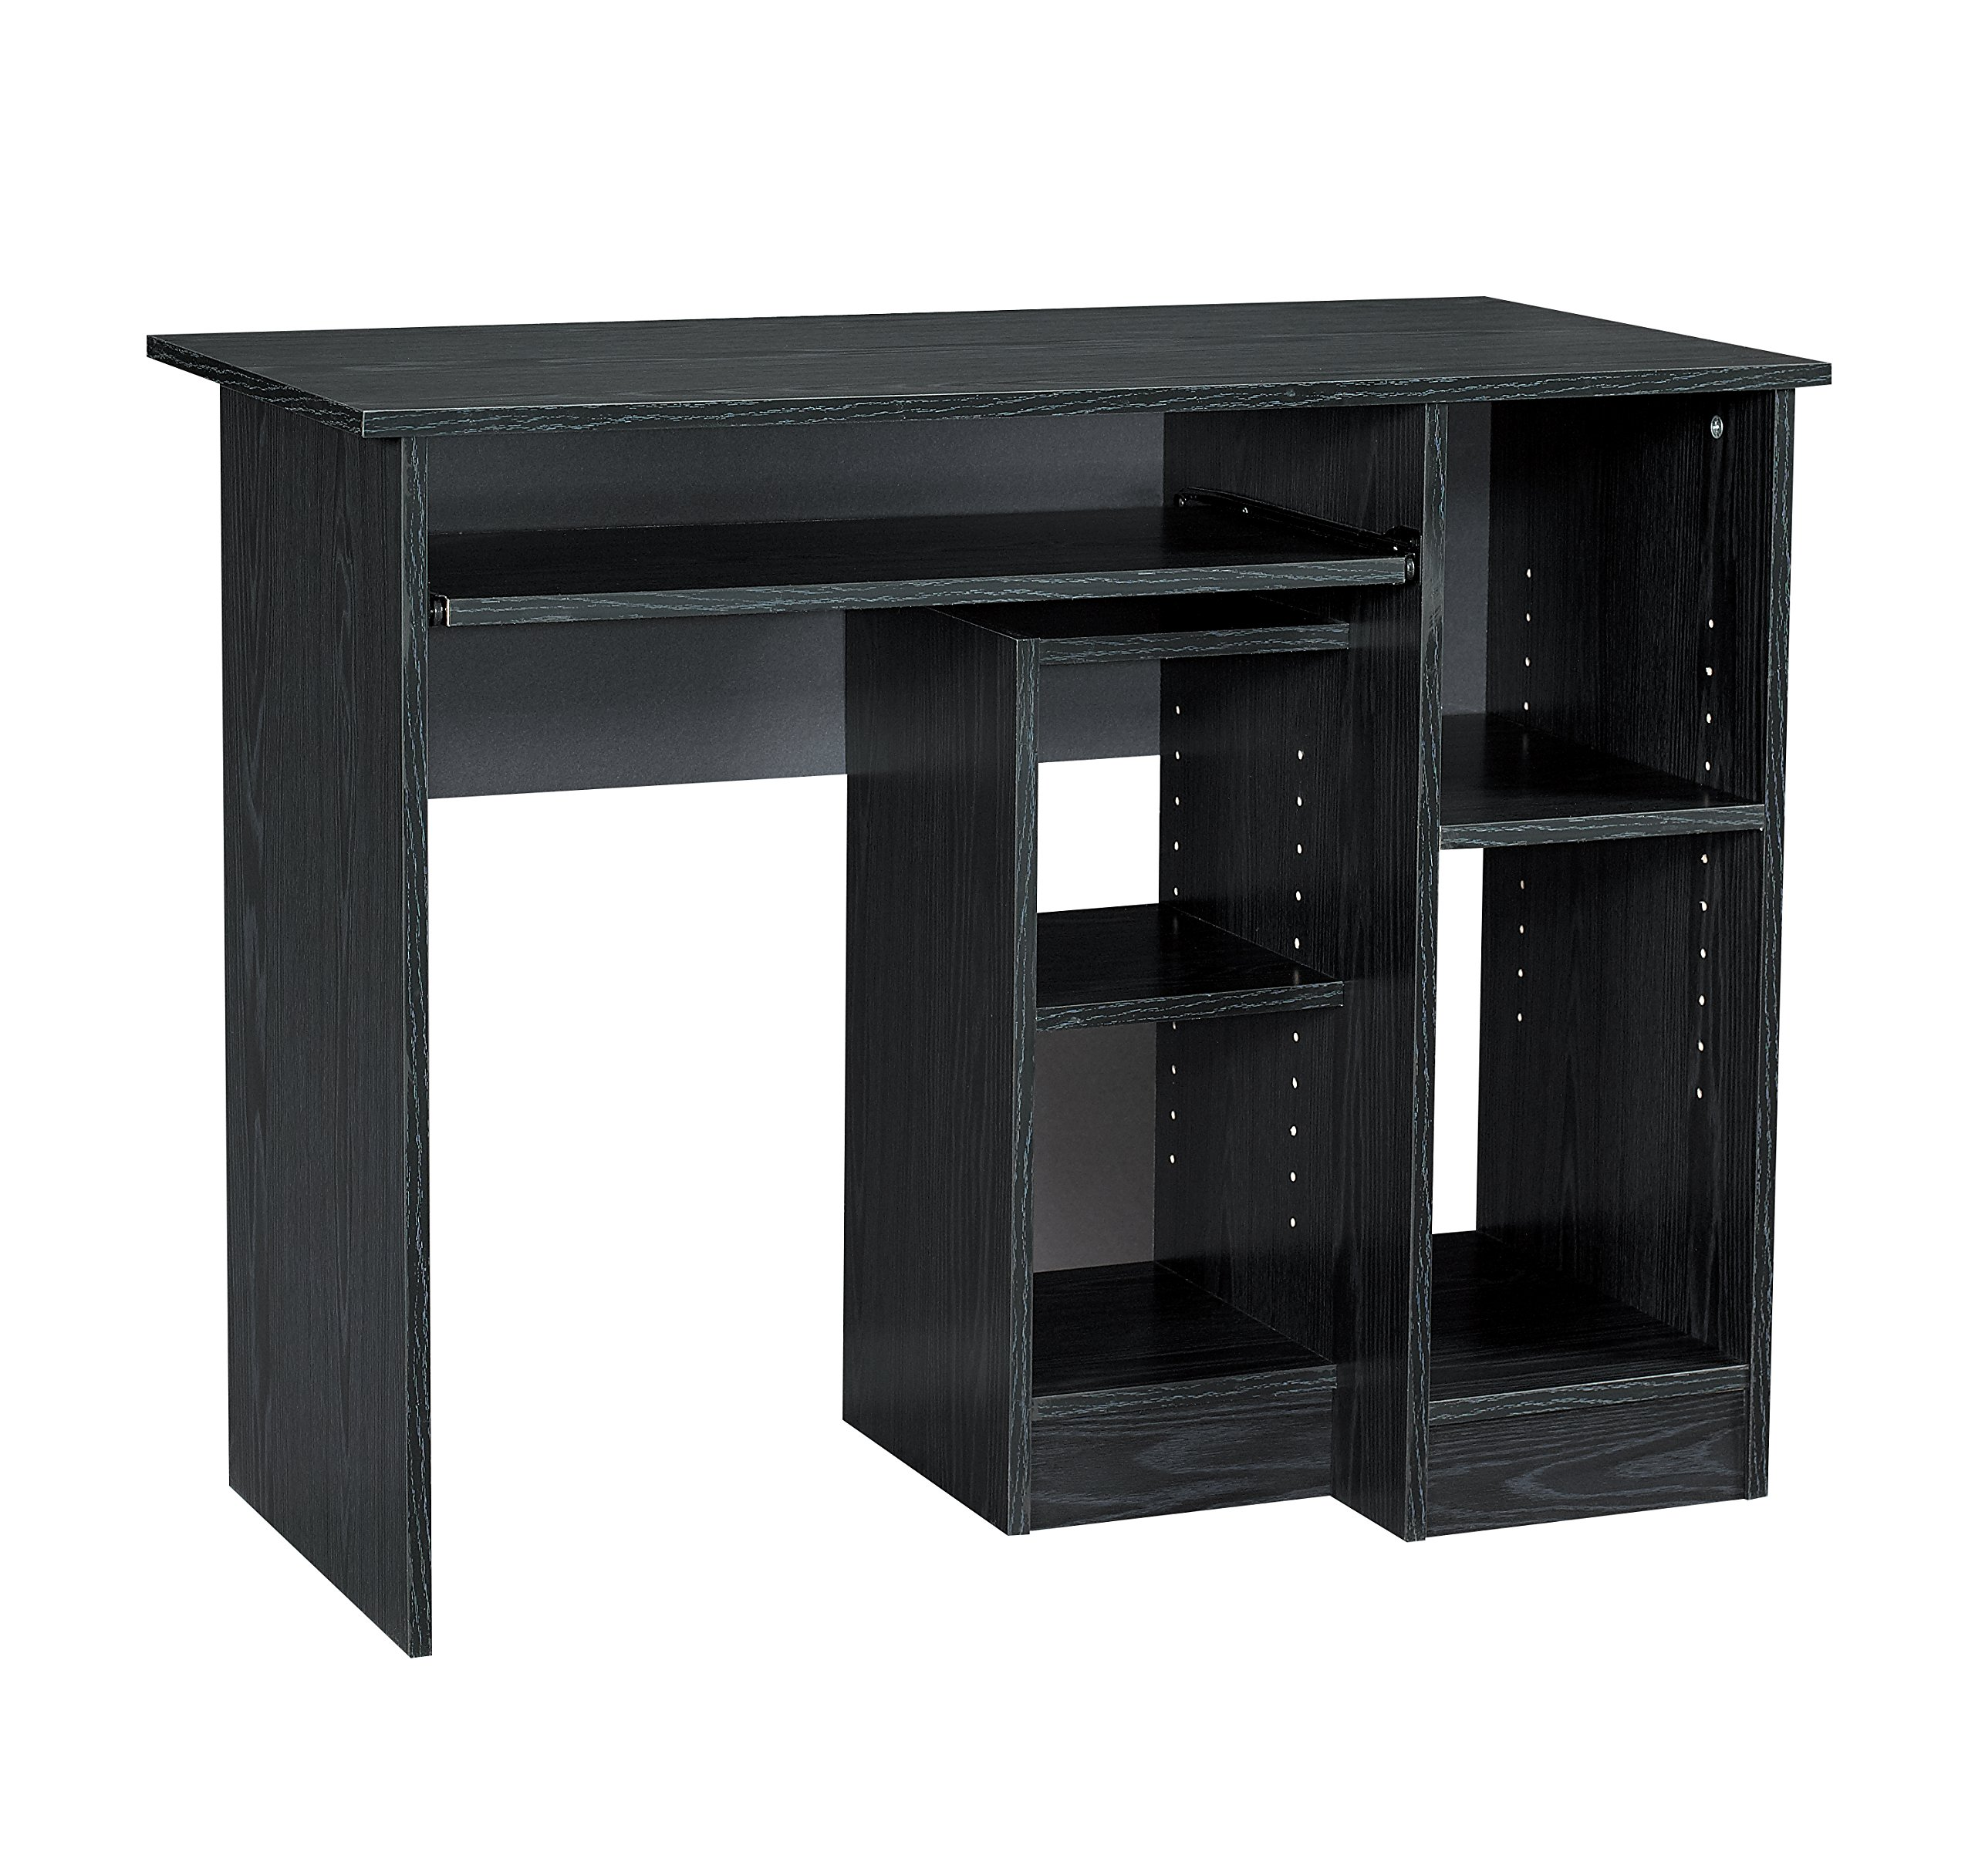 Mylex Computer Desk; 39.5 W x 19.5 D x 30-1/8 Inches, Black, Assembly Required (43254)